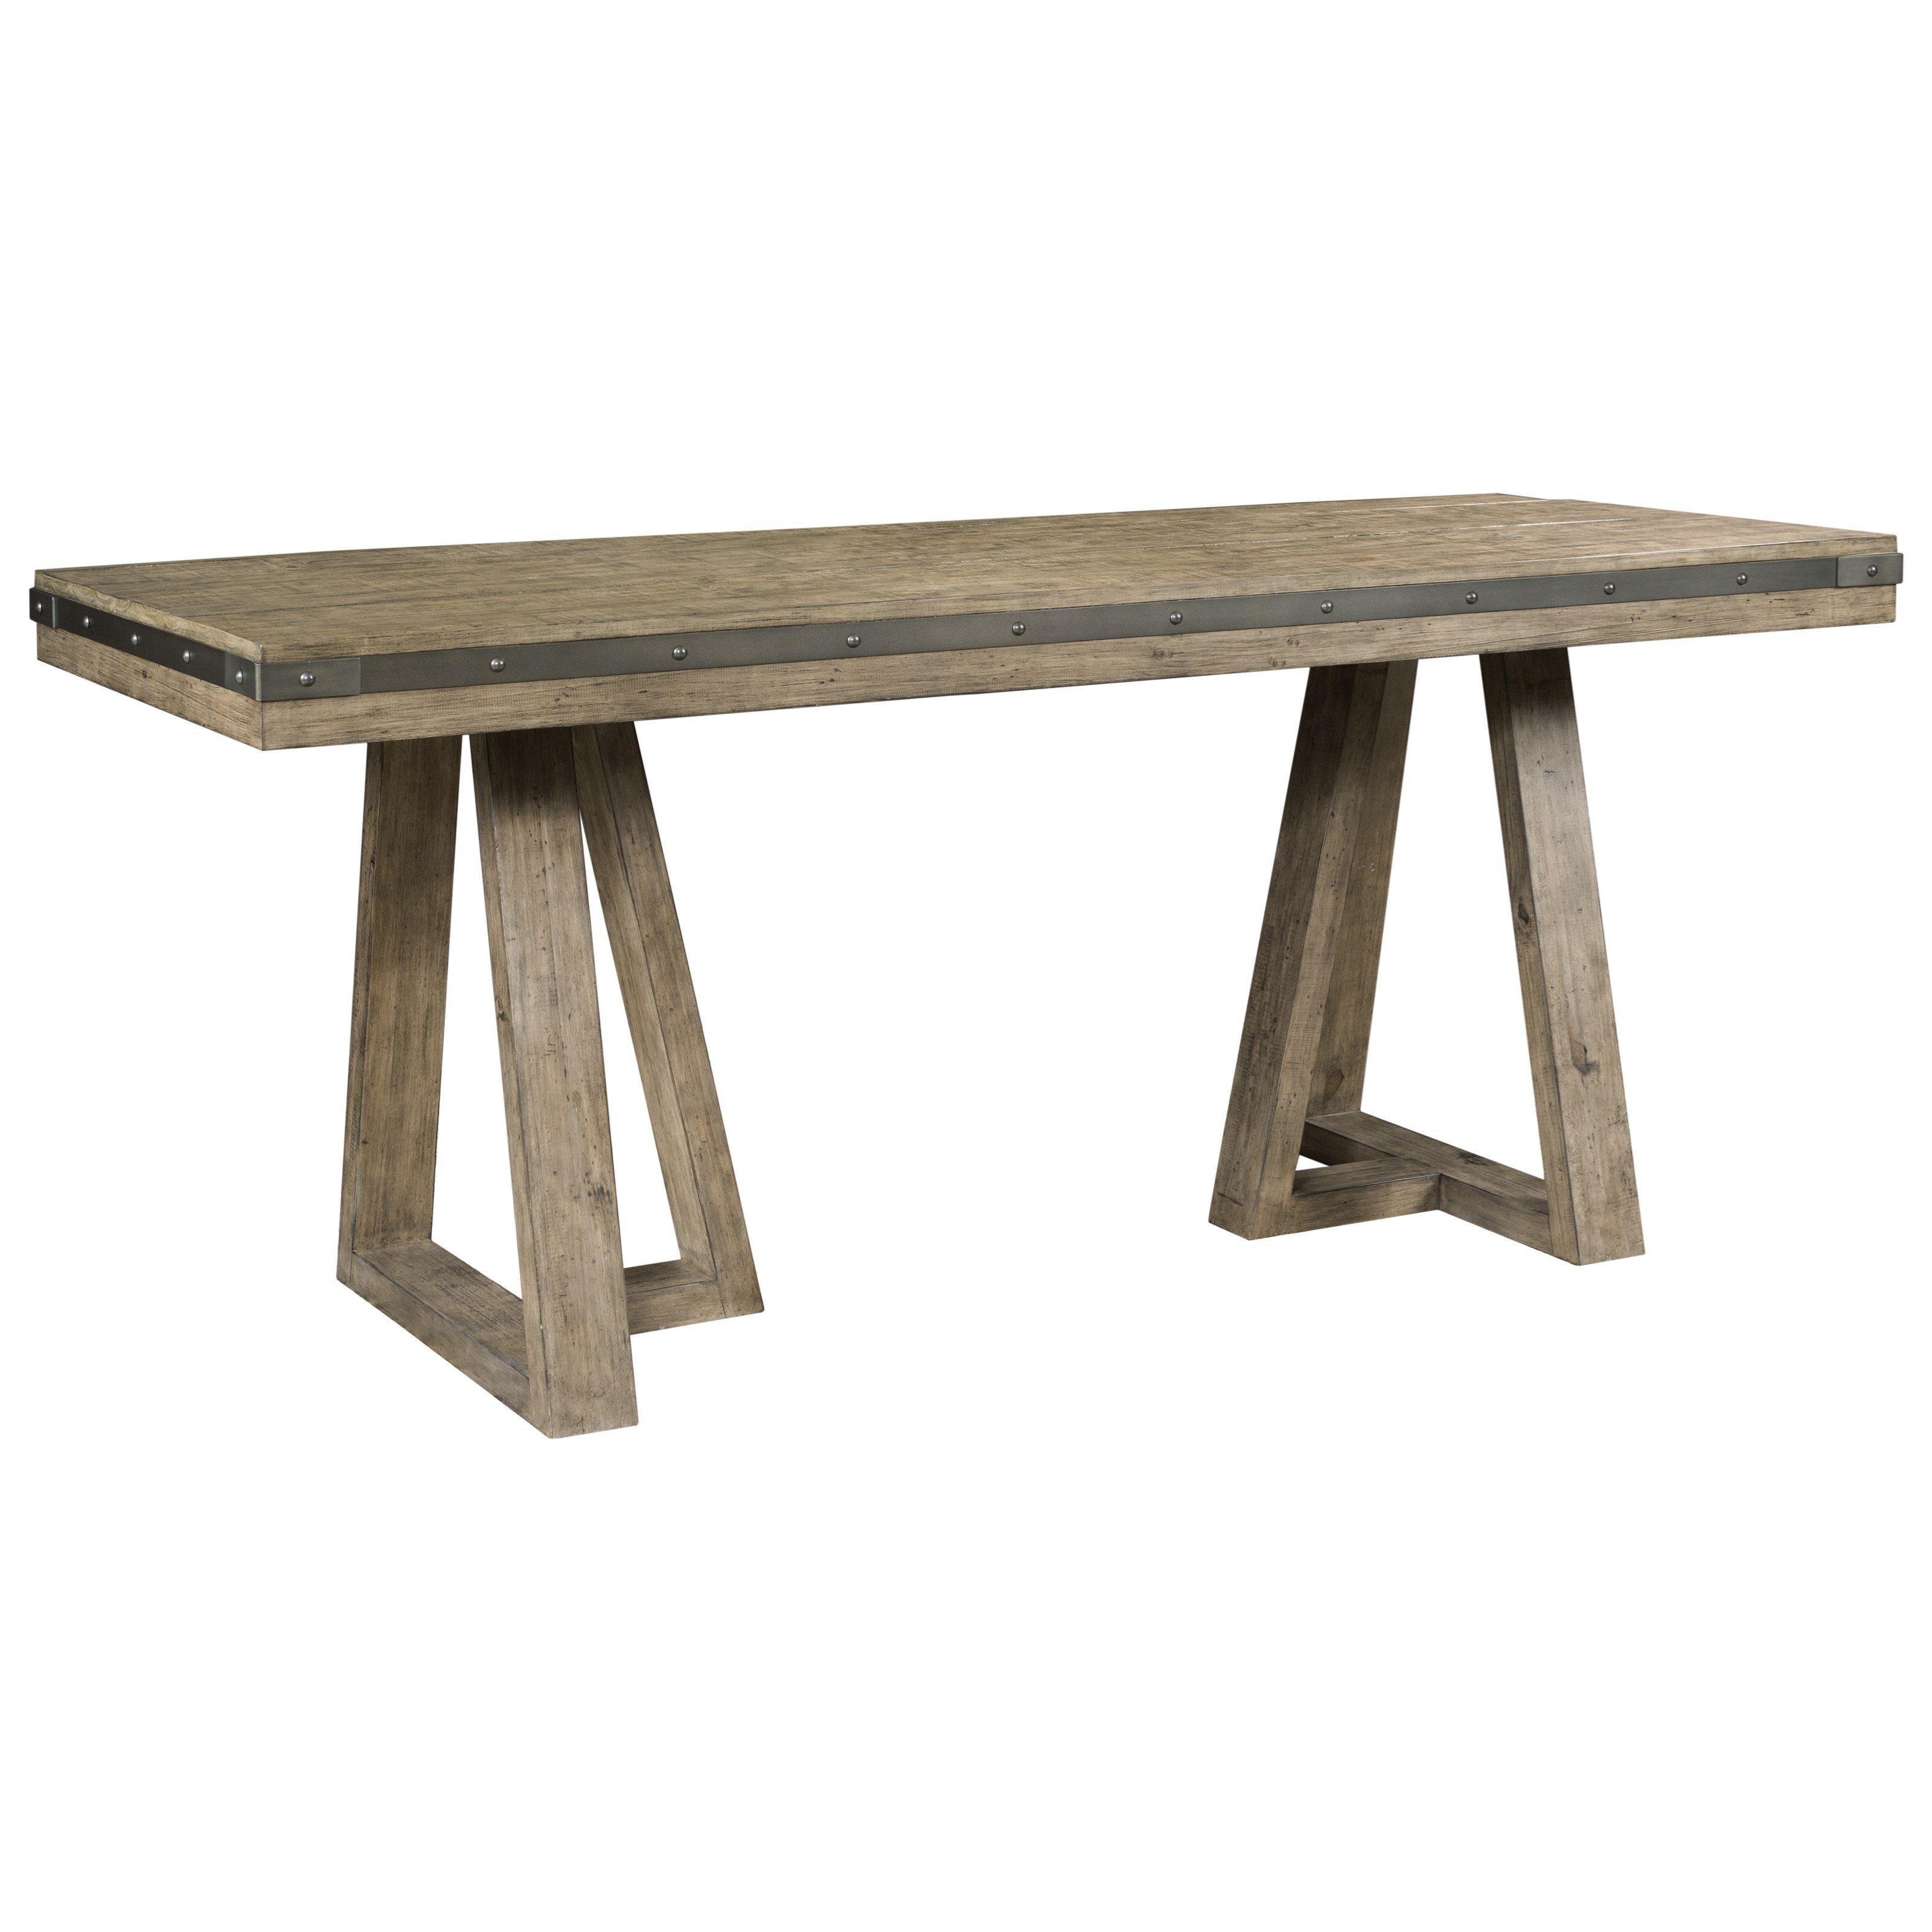 Plank Road Kimler Counter Height Dining Table at Stoney Creek Furniture